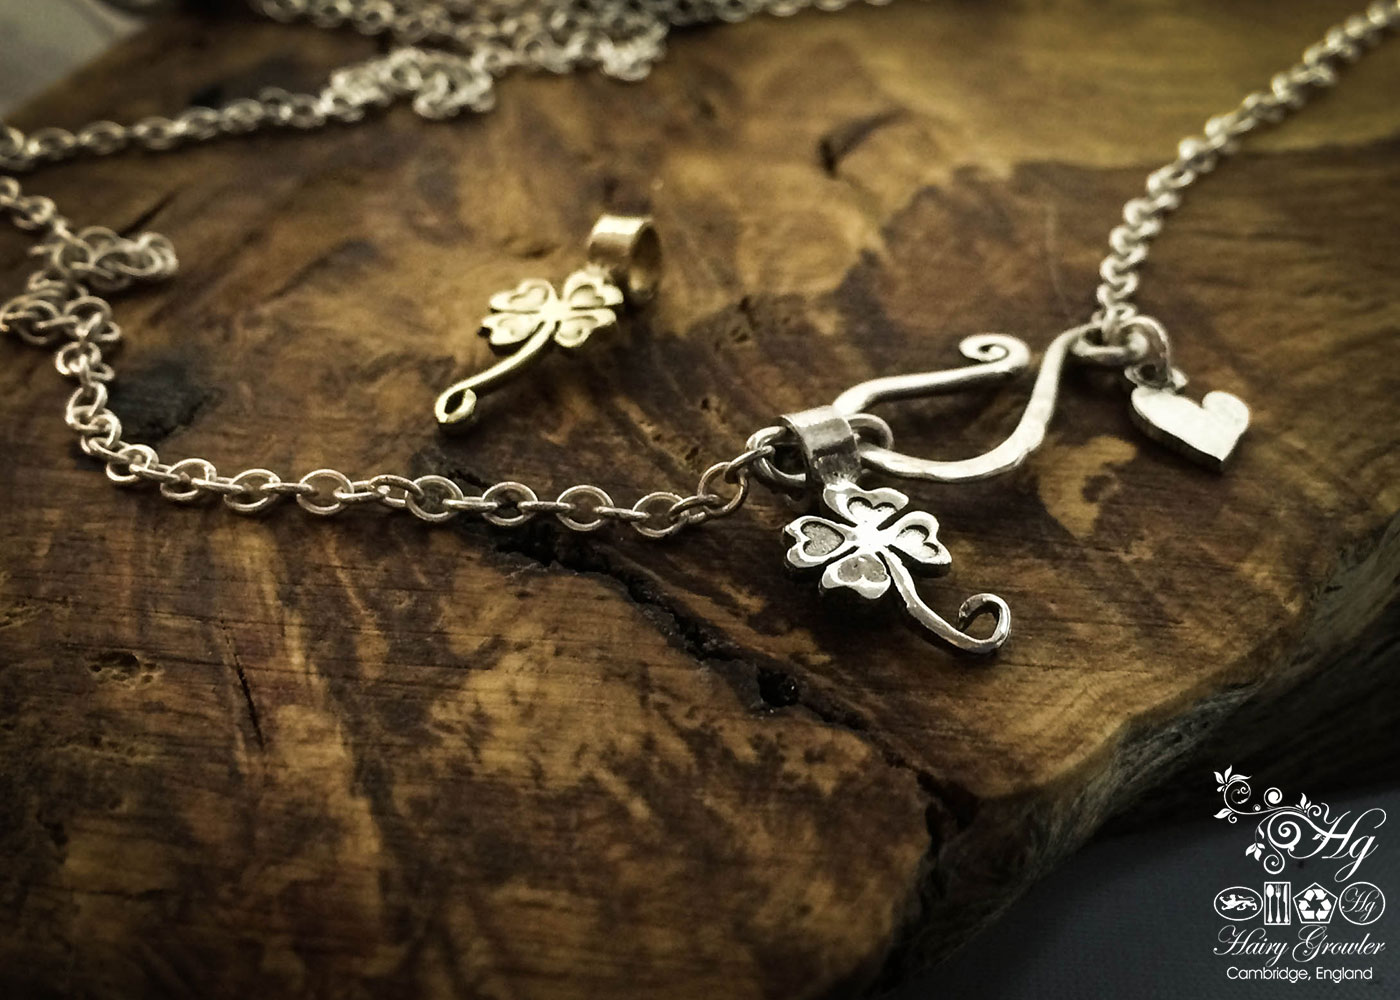 handcrafted and recycled silver lucky four leaf clover charms for a tree sculpture, necklace or bracelet